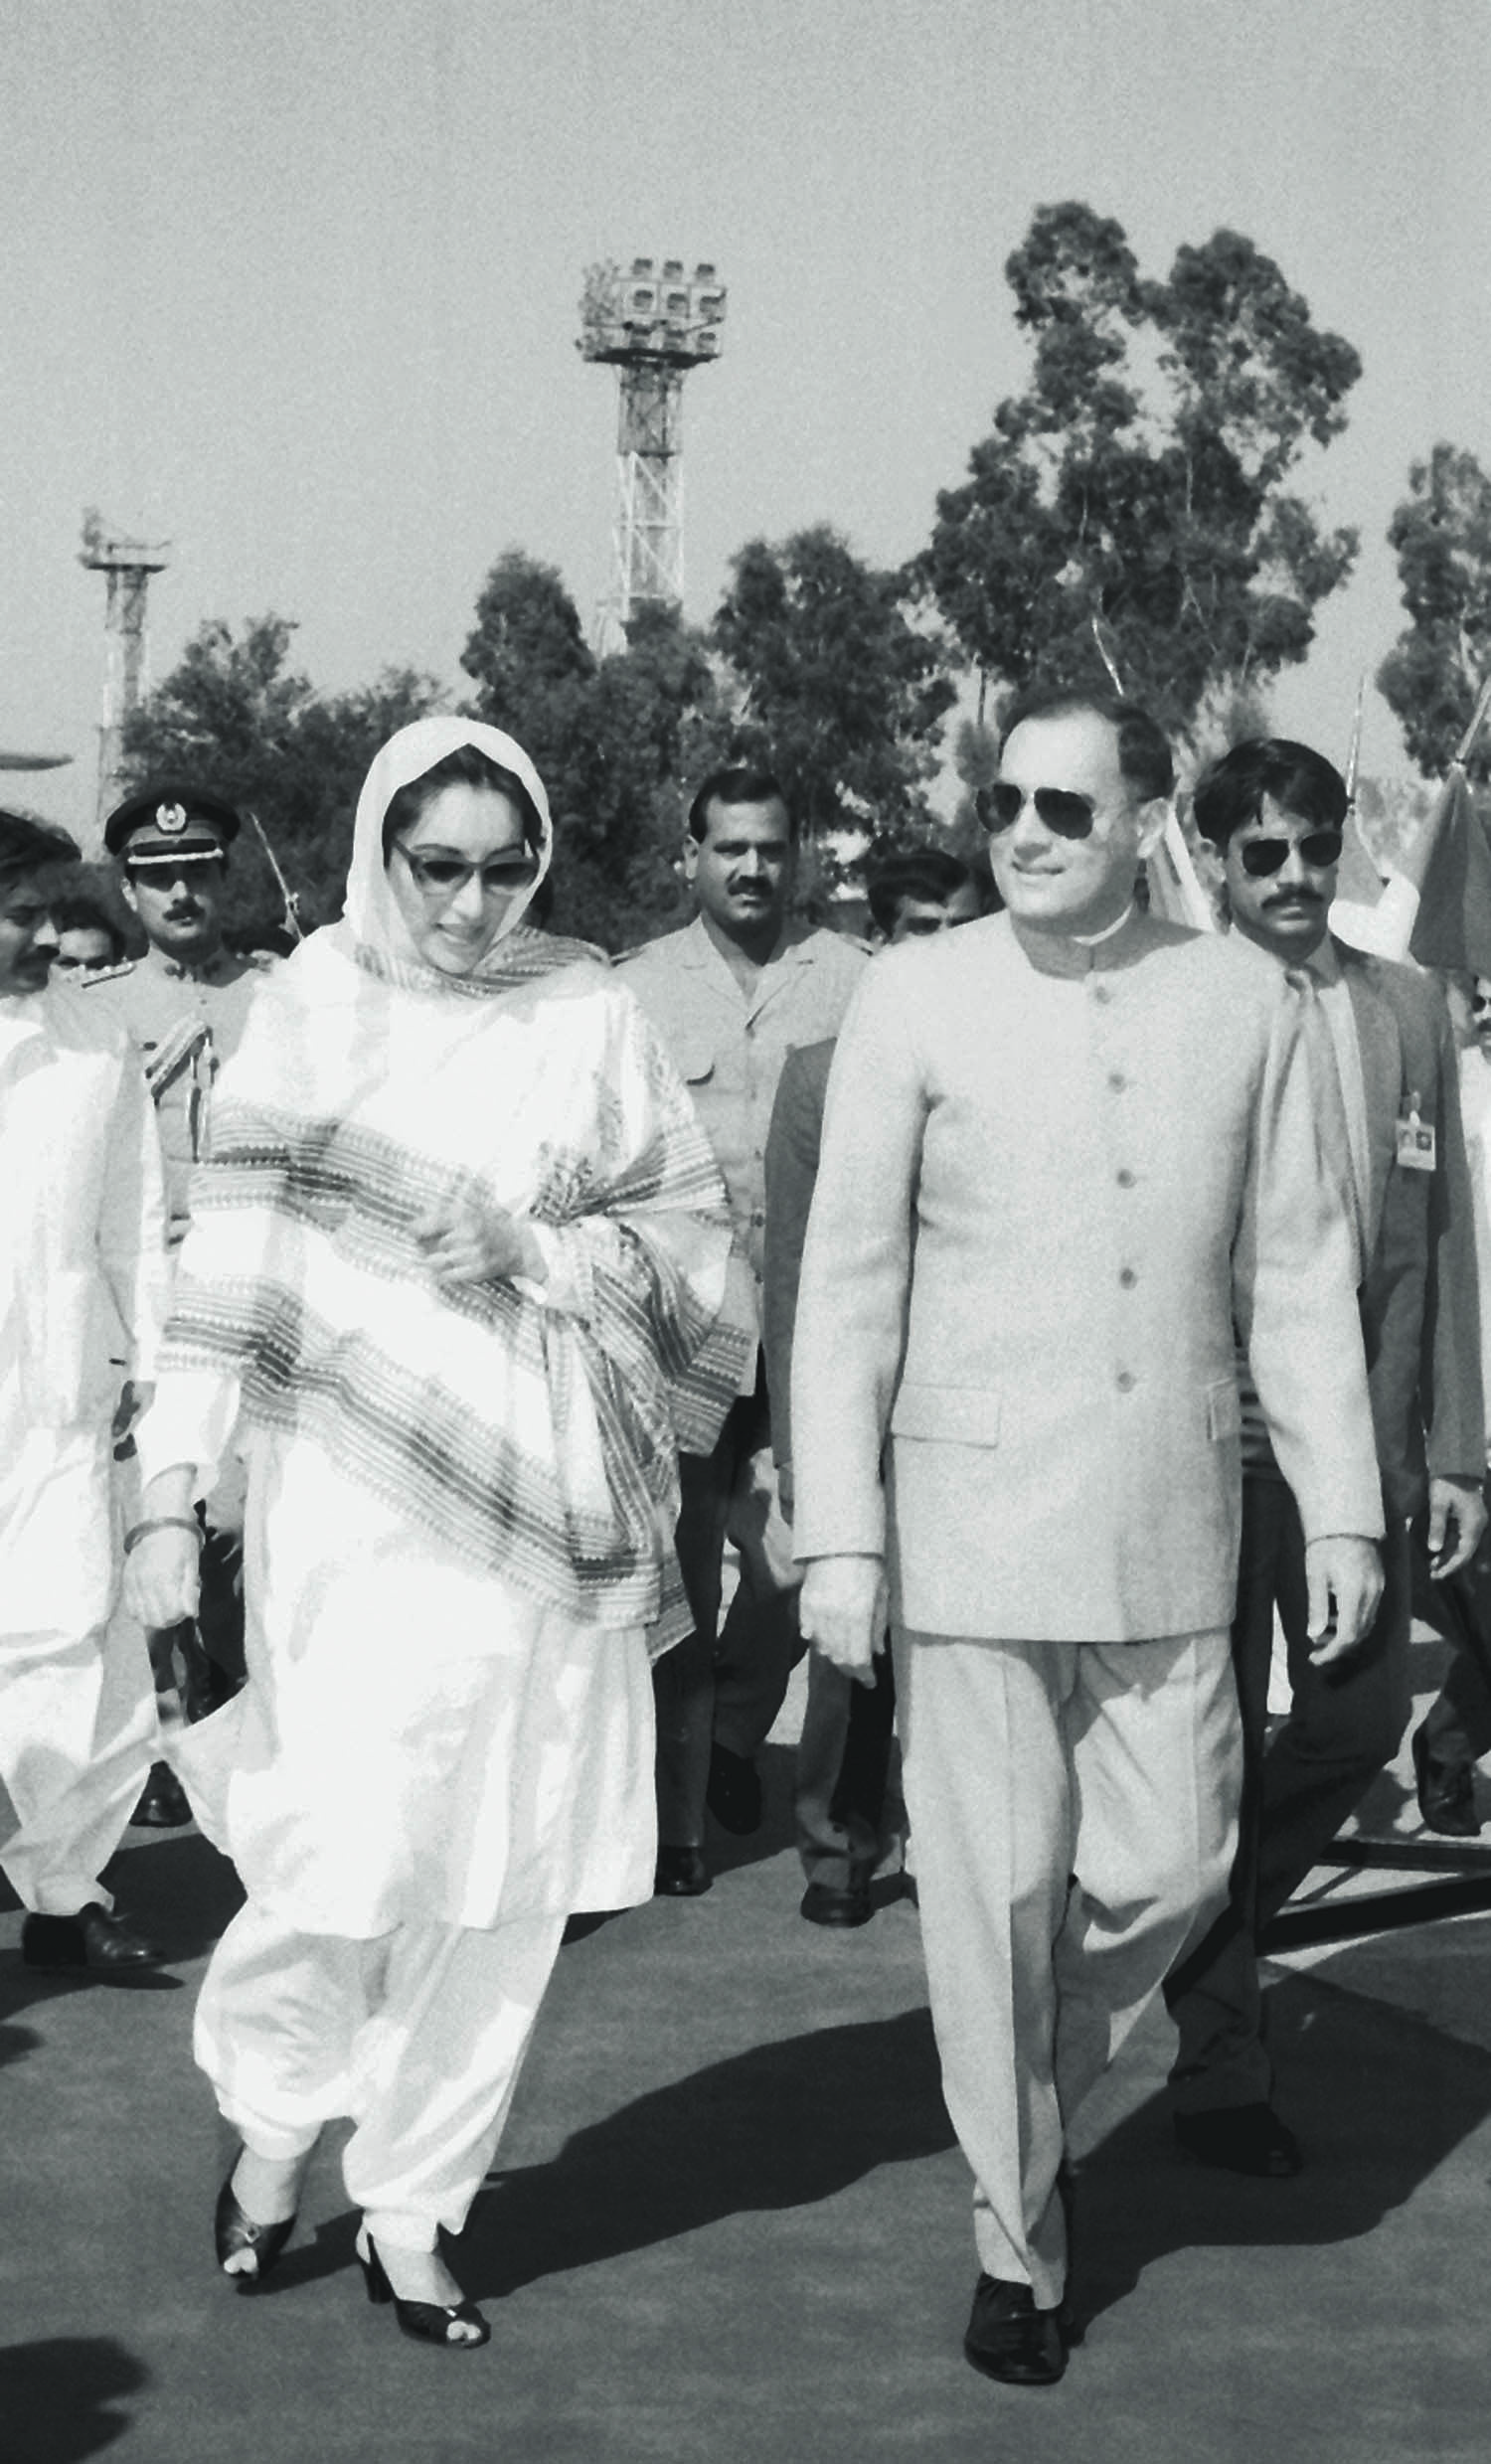 Benazir Bhutto was a gracious host when Rajiv Gandhi, her Indian counterpart, came visiting. The two at the time had tragic family histories behind them and, unbeknown to them, future gruesome and fatal tragedies awaiting them. | Photo: The Press Information Department, Ministry of Information, Broadcasting & National Heritage, Islamabad.